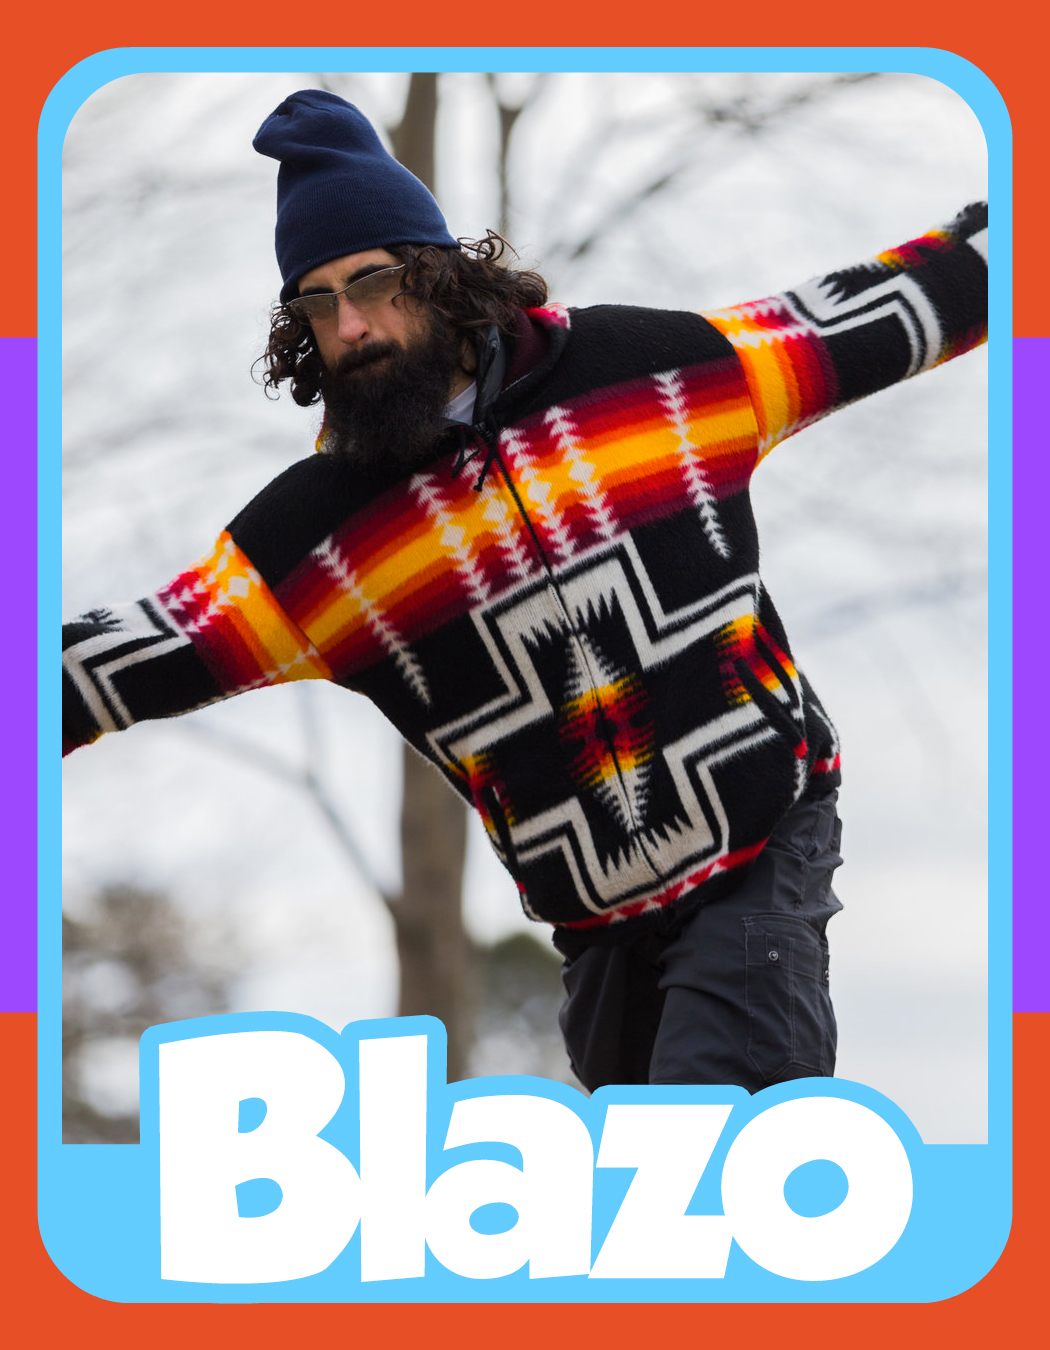 Blazo - This mythical man is both an actual person and a part of Clan Blazo. Rarely in one place for long, we were lucky to have him for our inaugural season. Posting 2 tournament wins and a second-place finish, Blazo has never missed a podium. This lefty possesses an almost wizard-like control of the disc and makes even the most difficult throws seem routine.